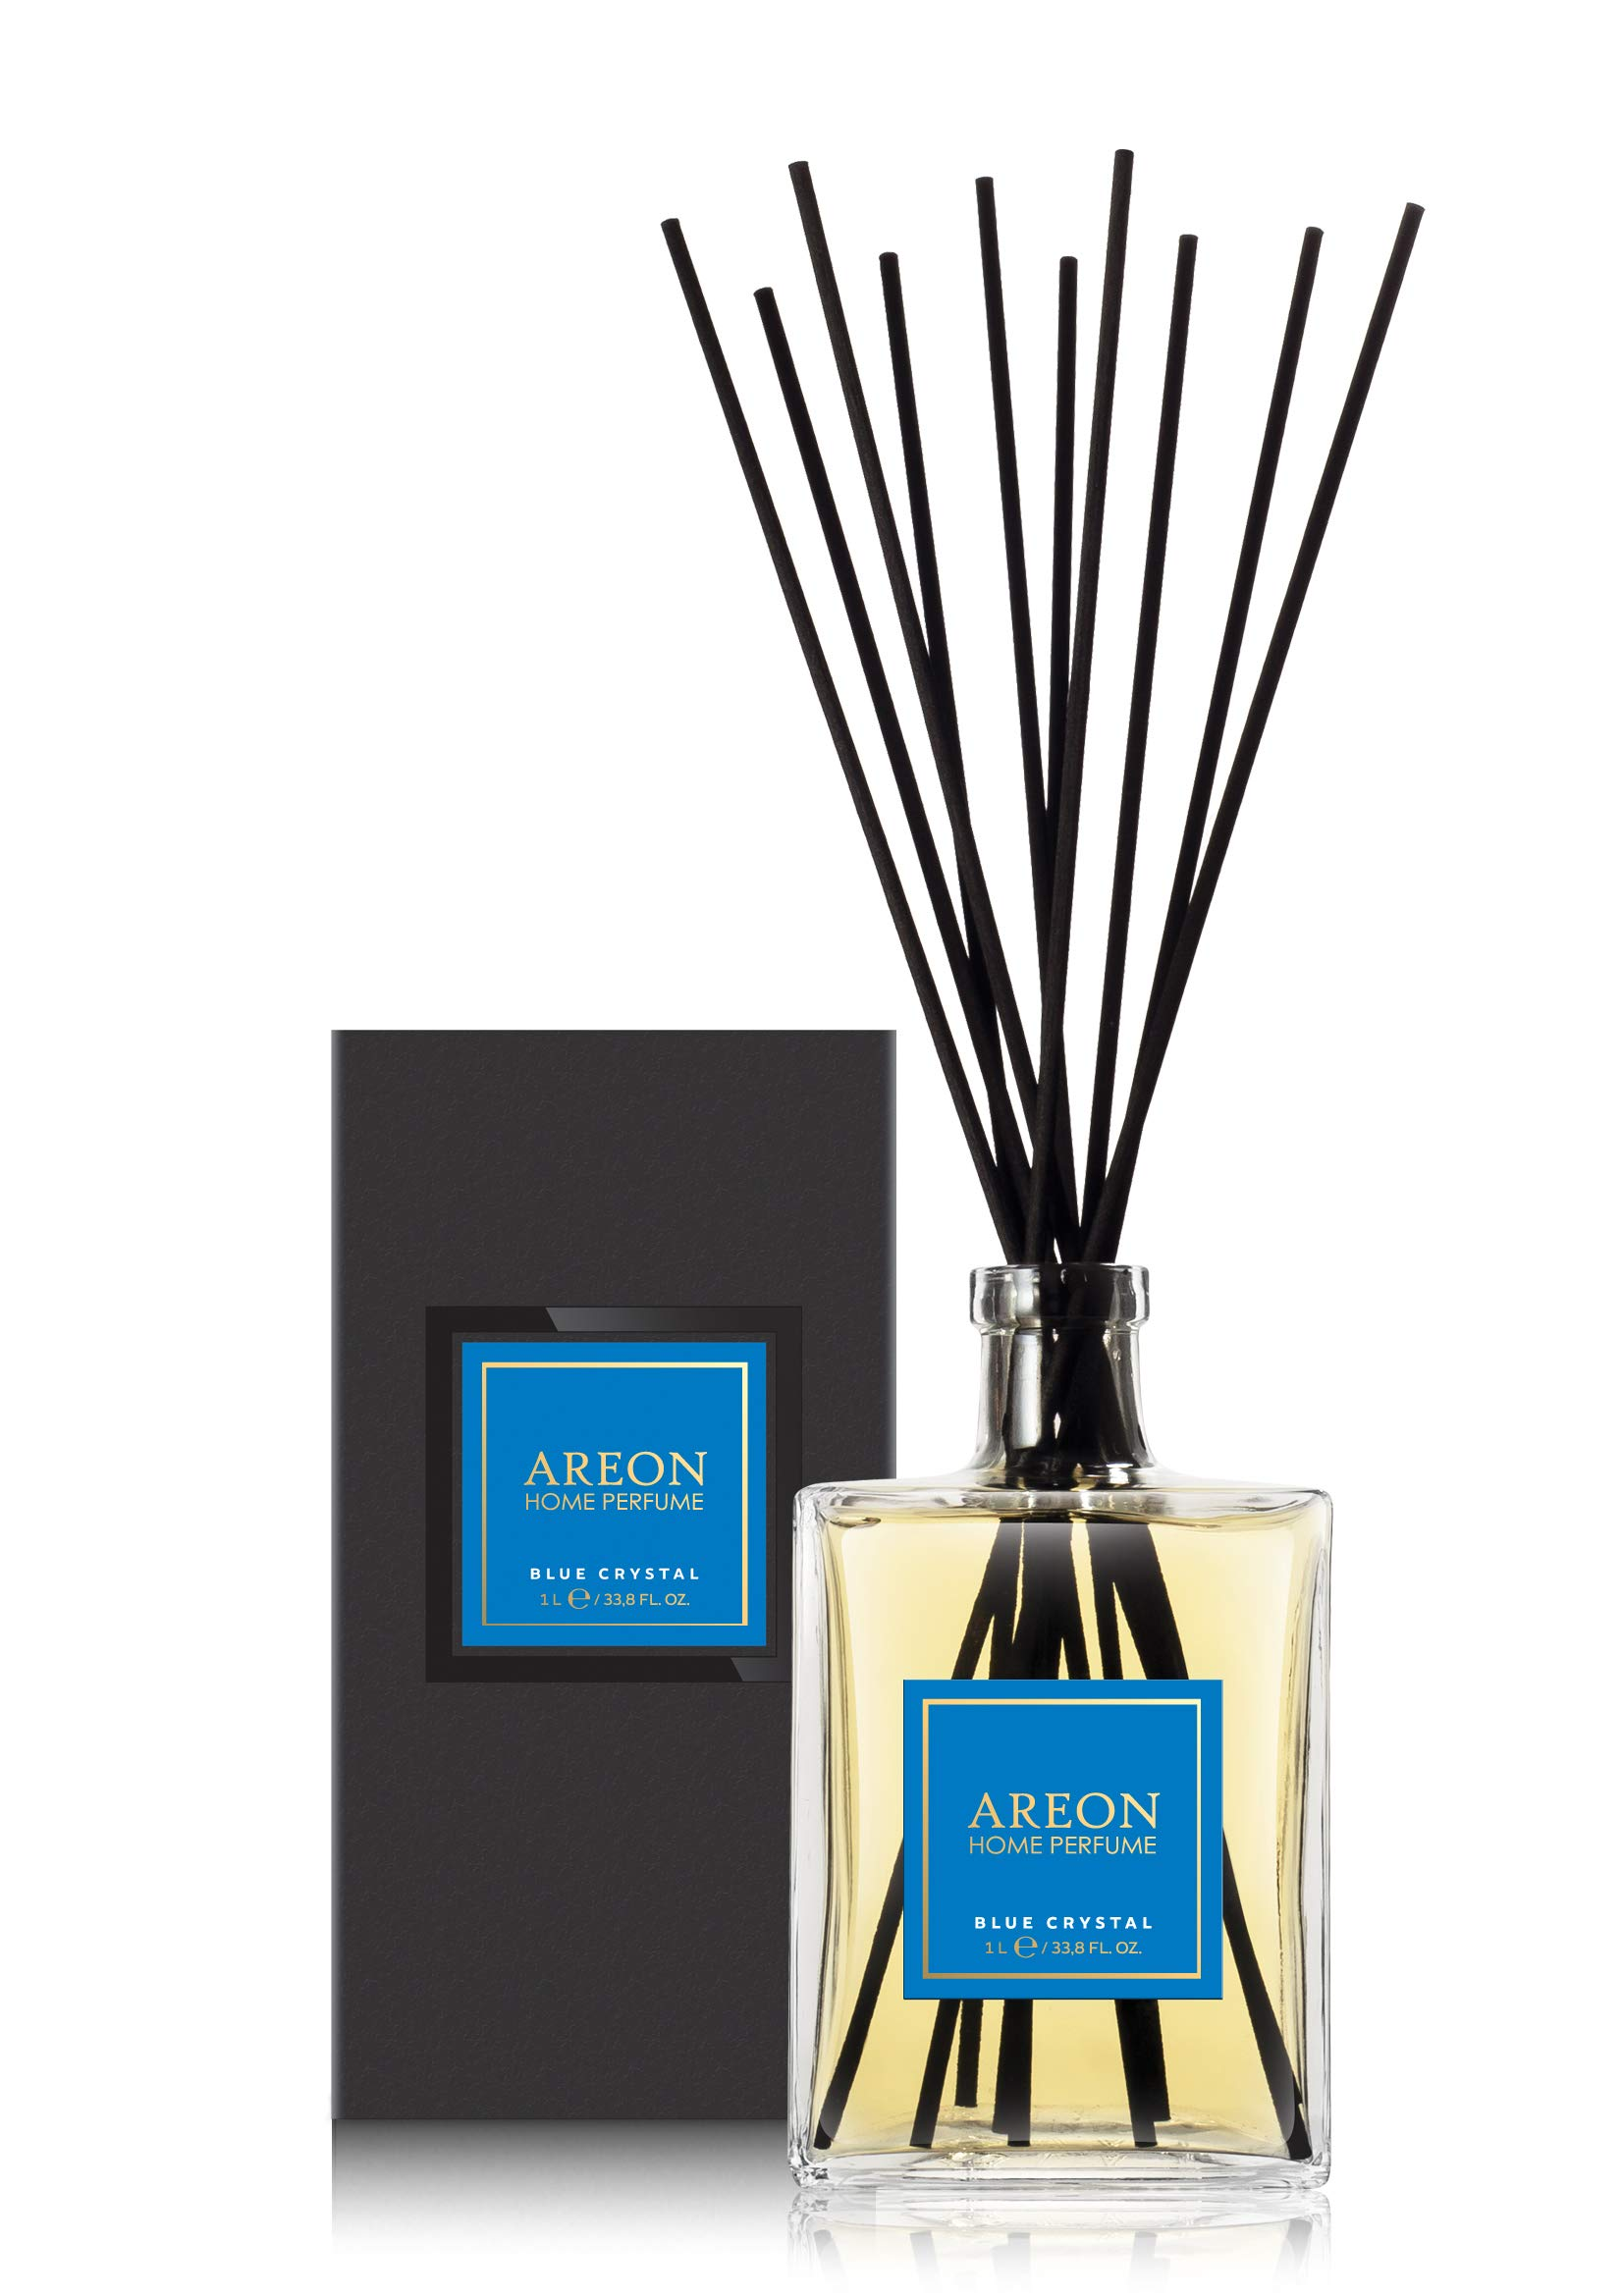 Areon Home Perfume Sticks - 1 Liter (34 OZ) Blue Crystal by Areon (Image #1)